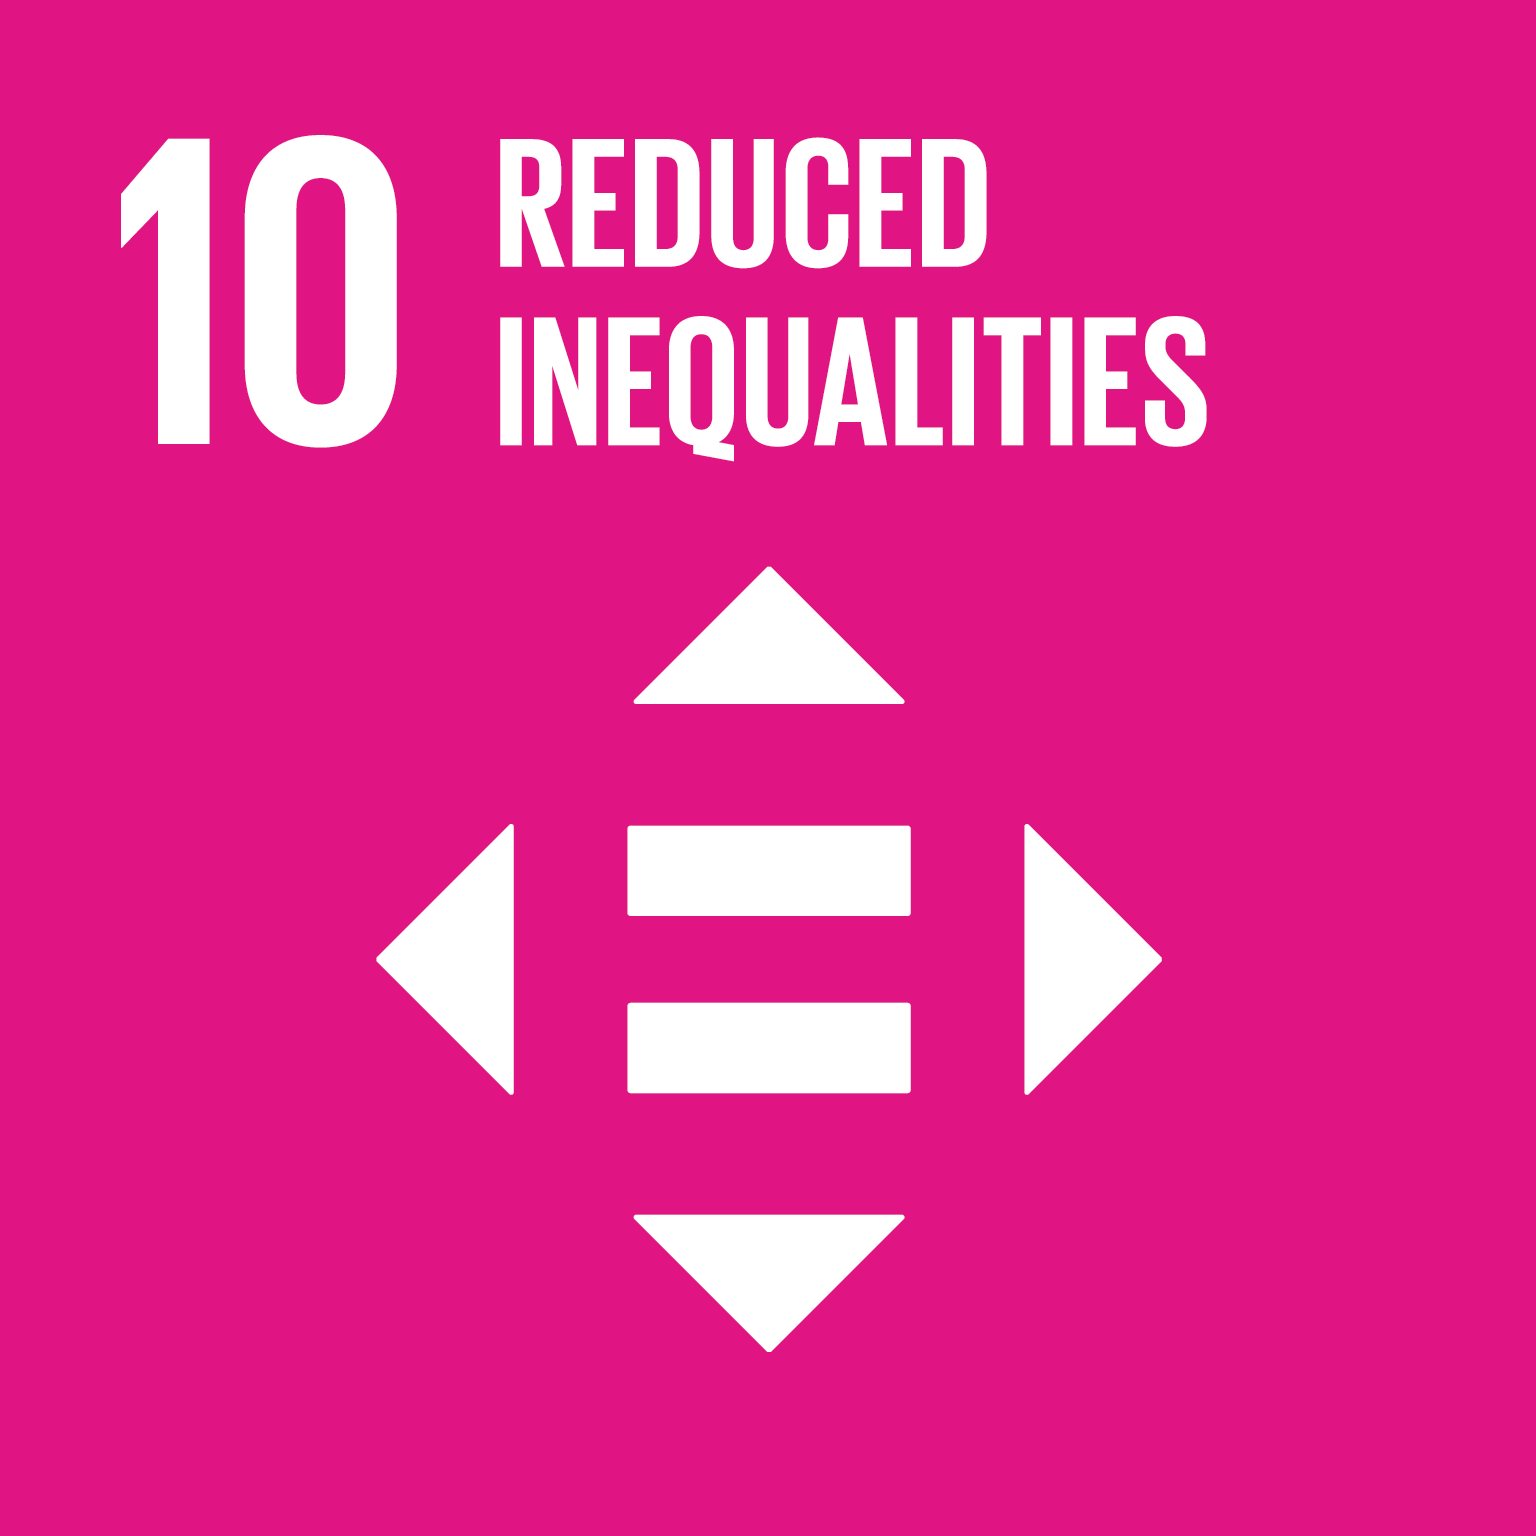 Reduce Inequalities